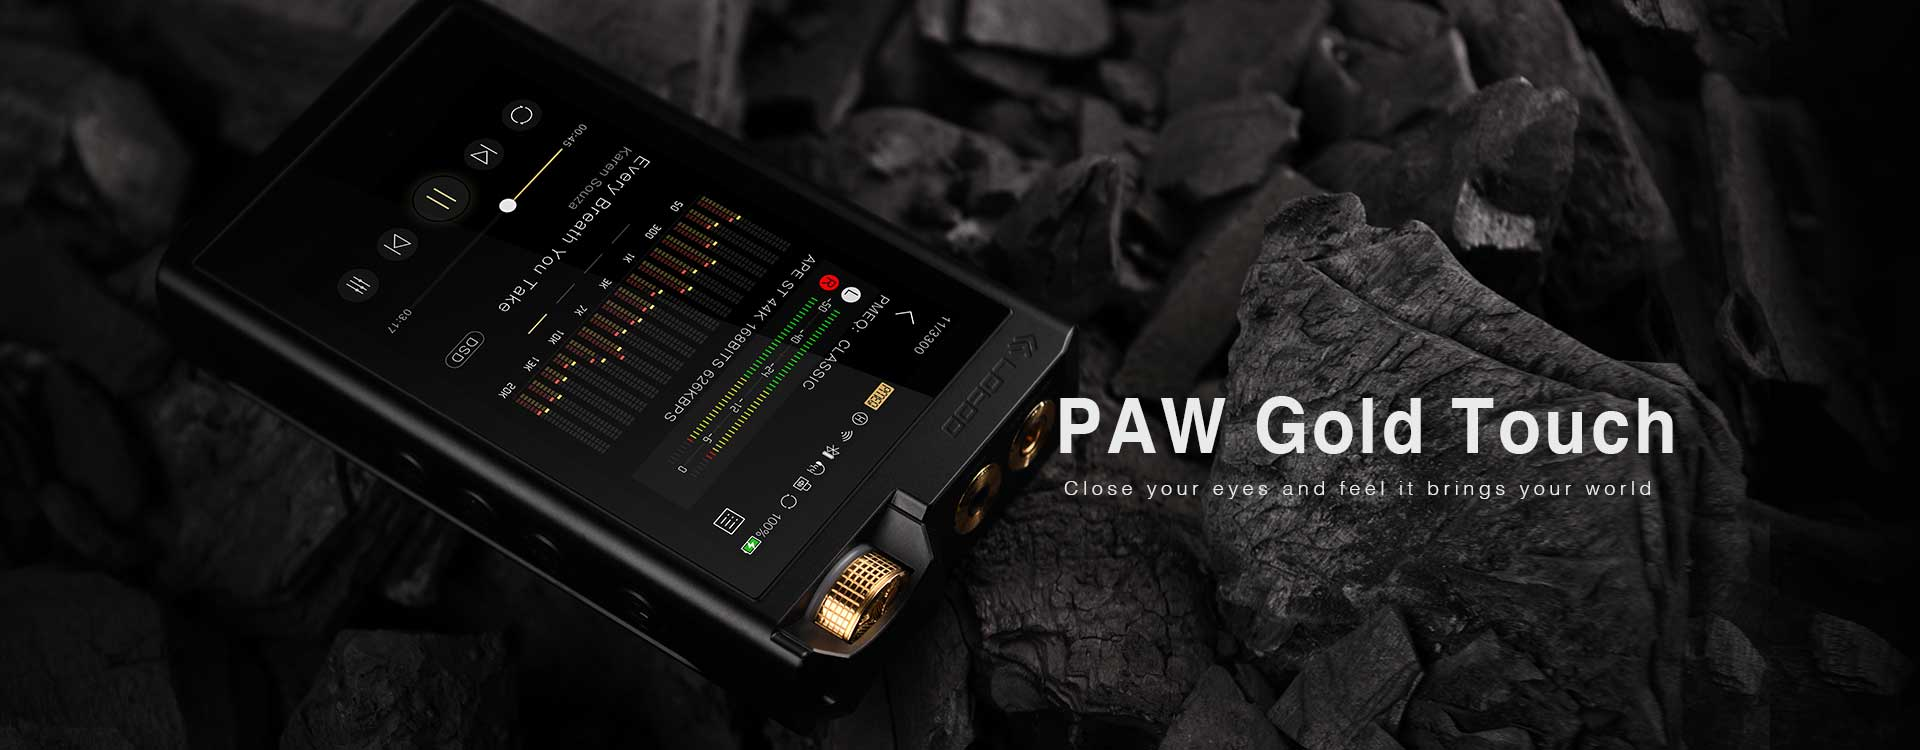 Rapallo   Lotoo PAW Gold Touch Digital Audio Player